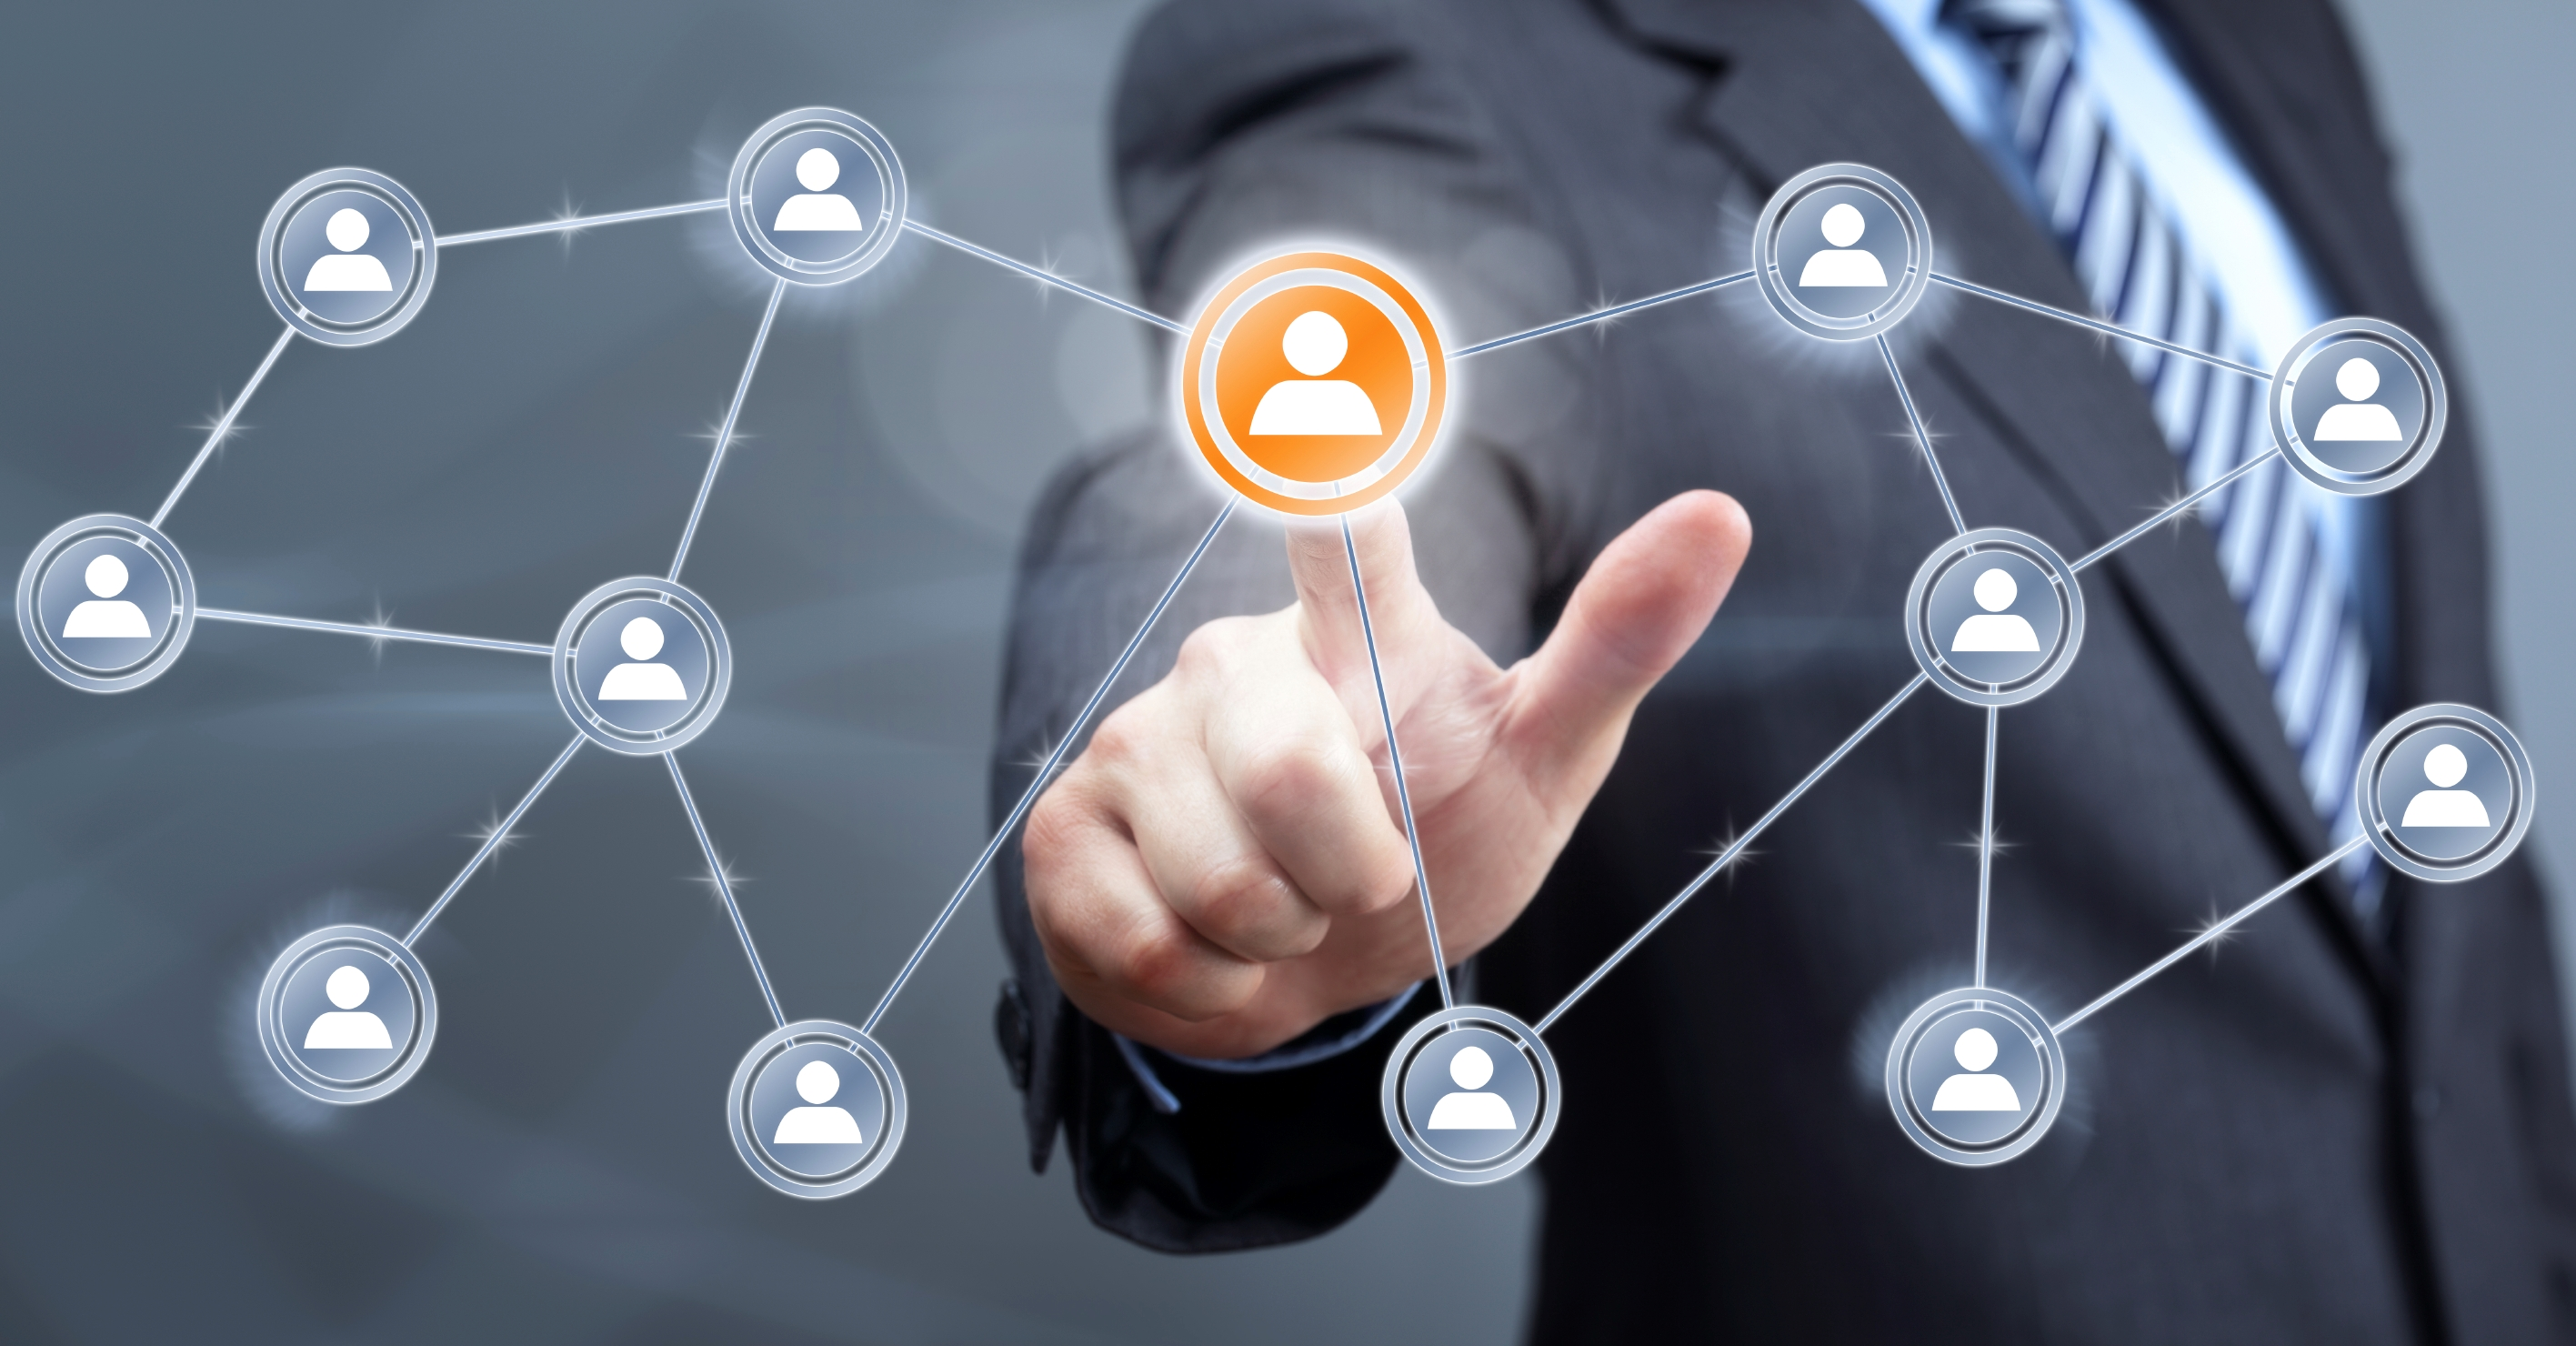 Put your network to good use by using LinkedIn's Alumni tool